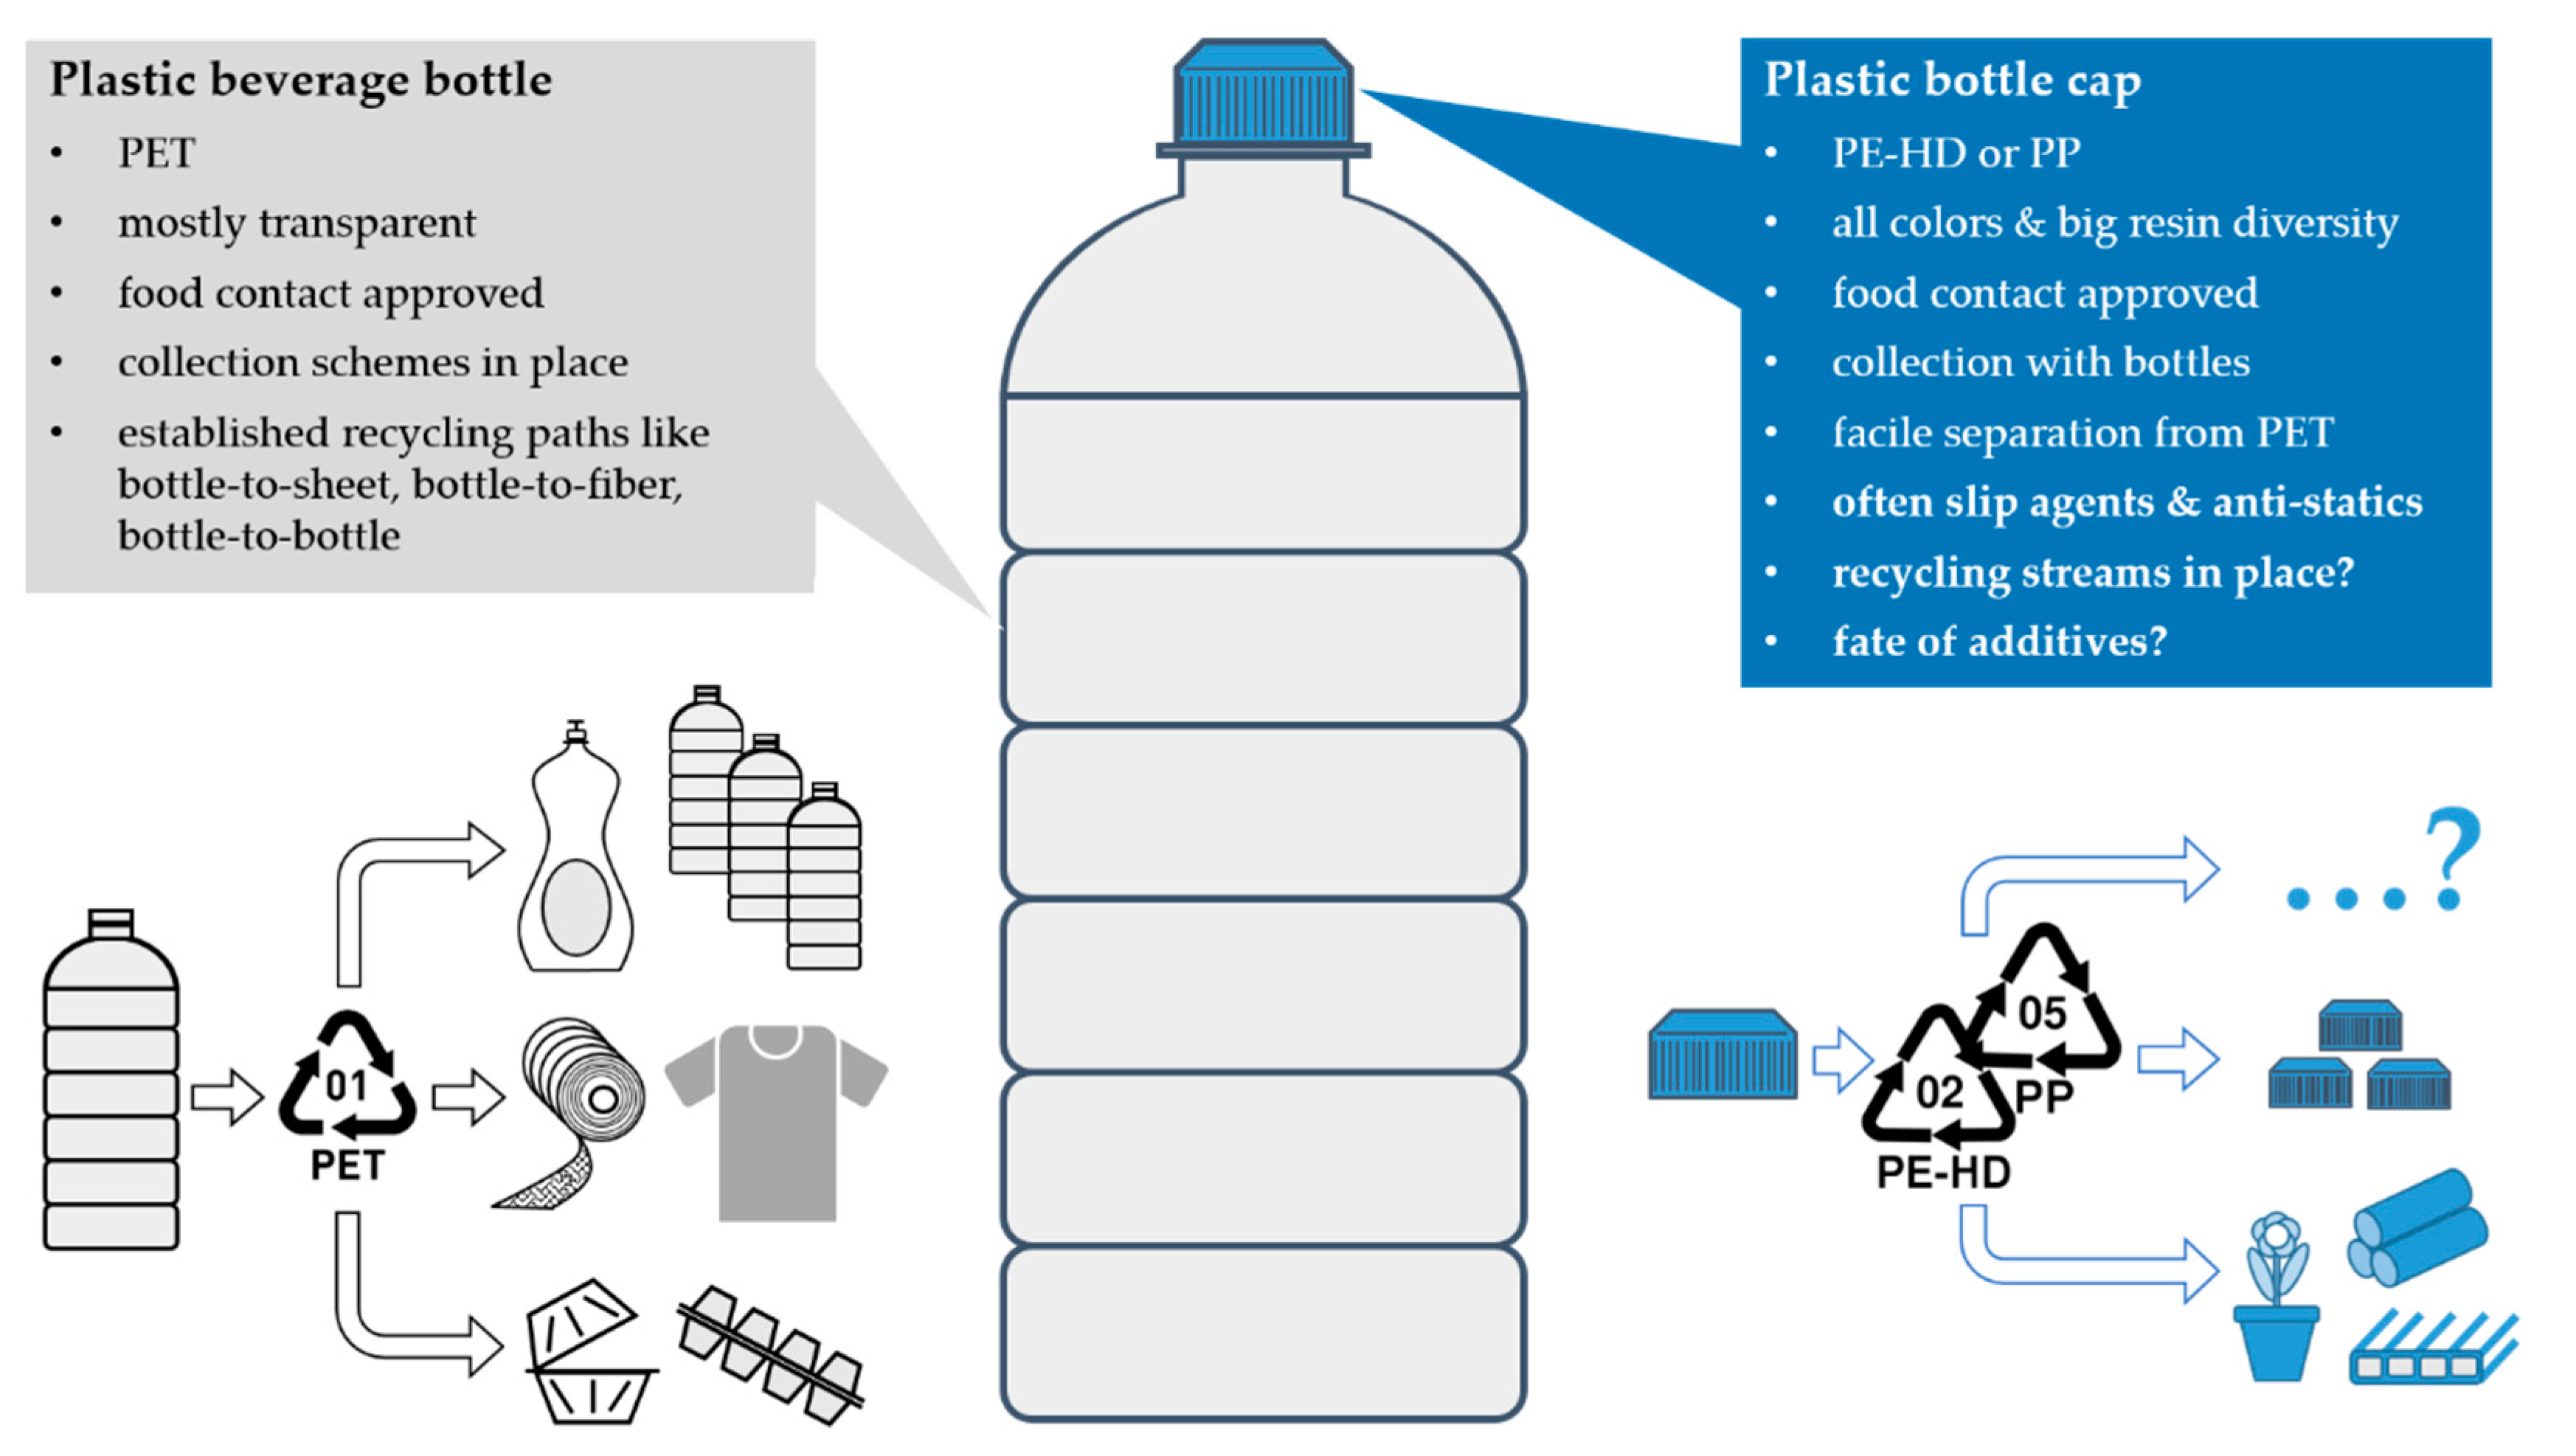 Sustainability Free Full Text Plastic Bottle Cap Recycling Characterization Of Recyclate Composition And Opportunities For Design For Circularity